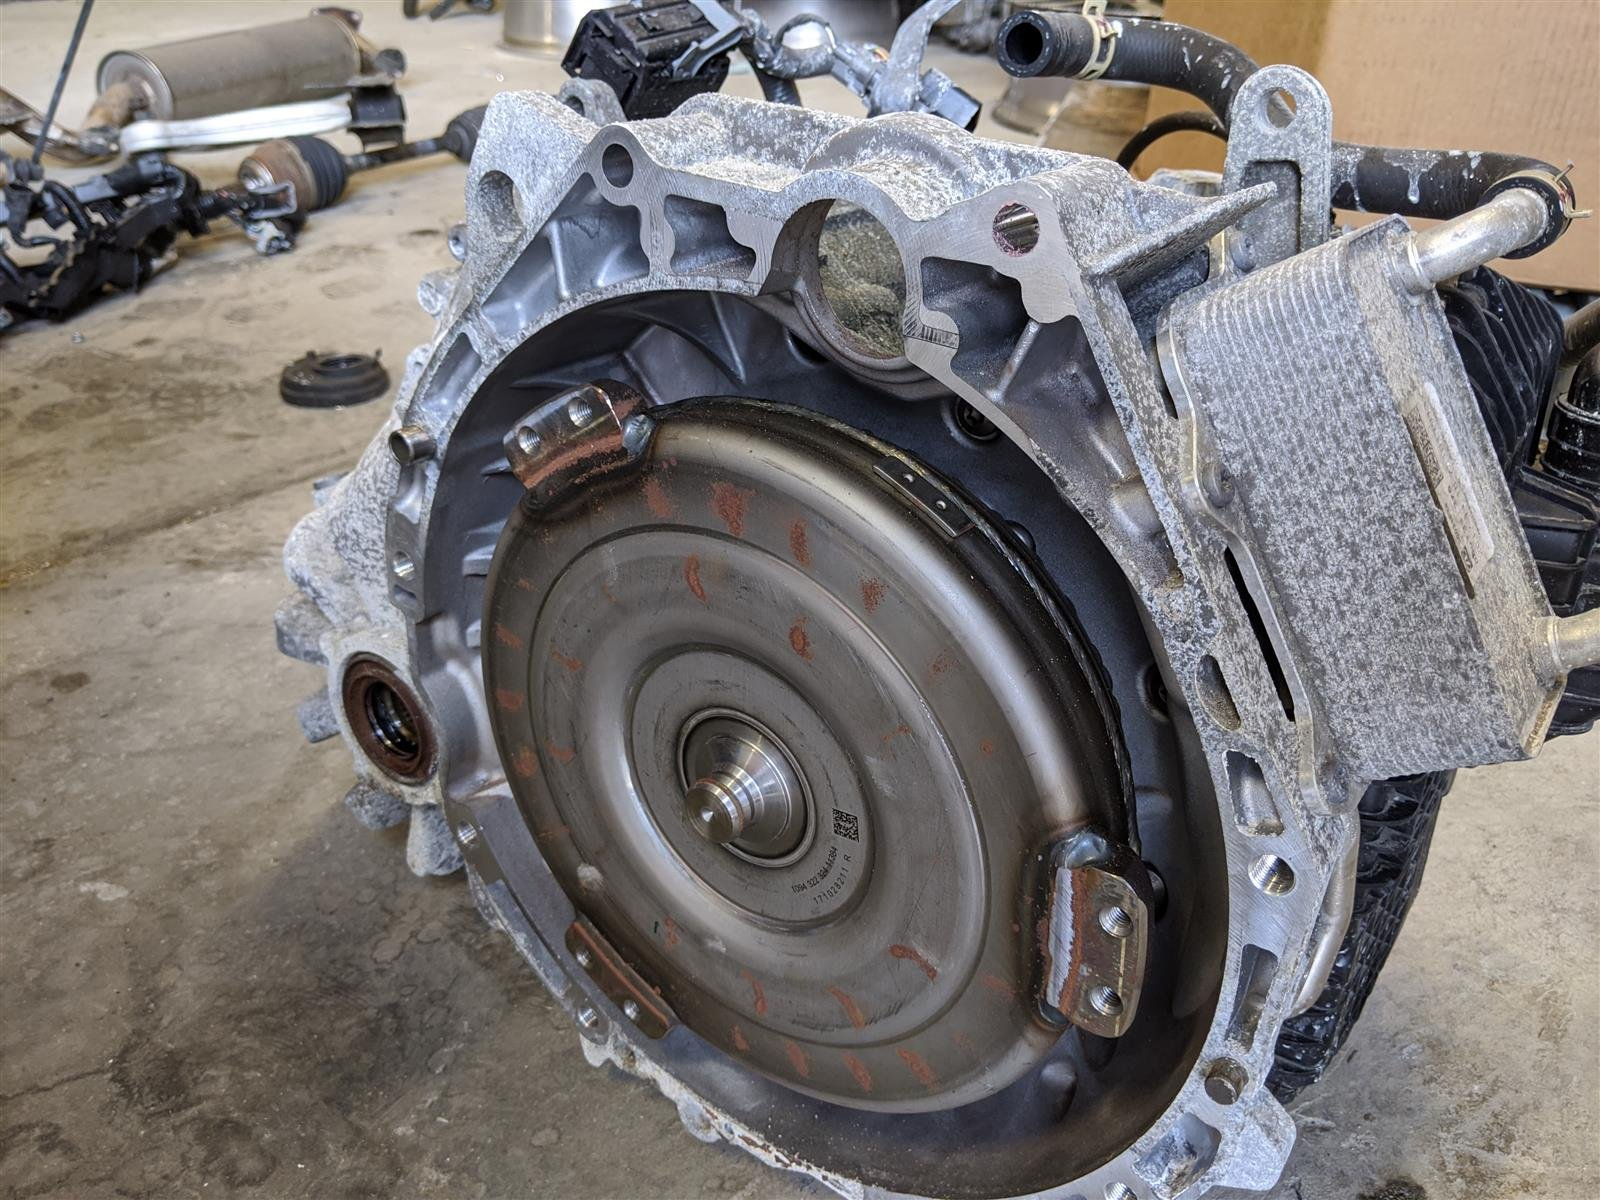 2018 Honda Odyssey Transmission 51,000 Miles 9 Speed Replacement